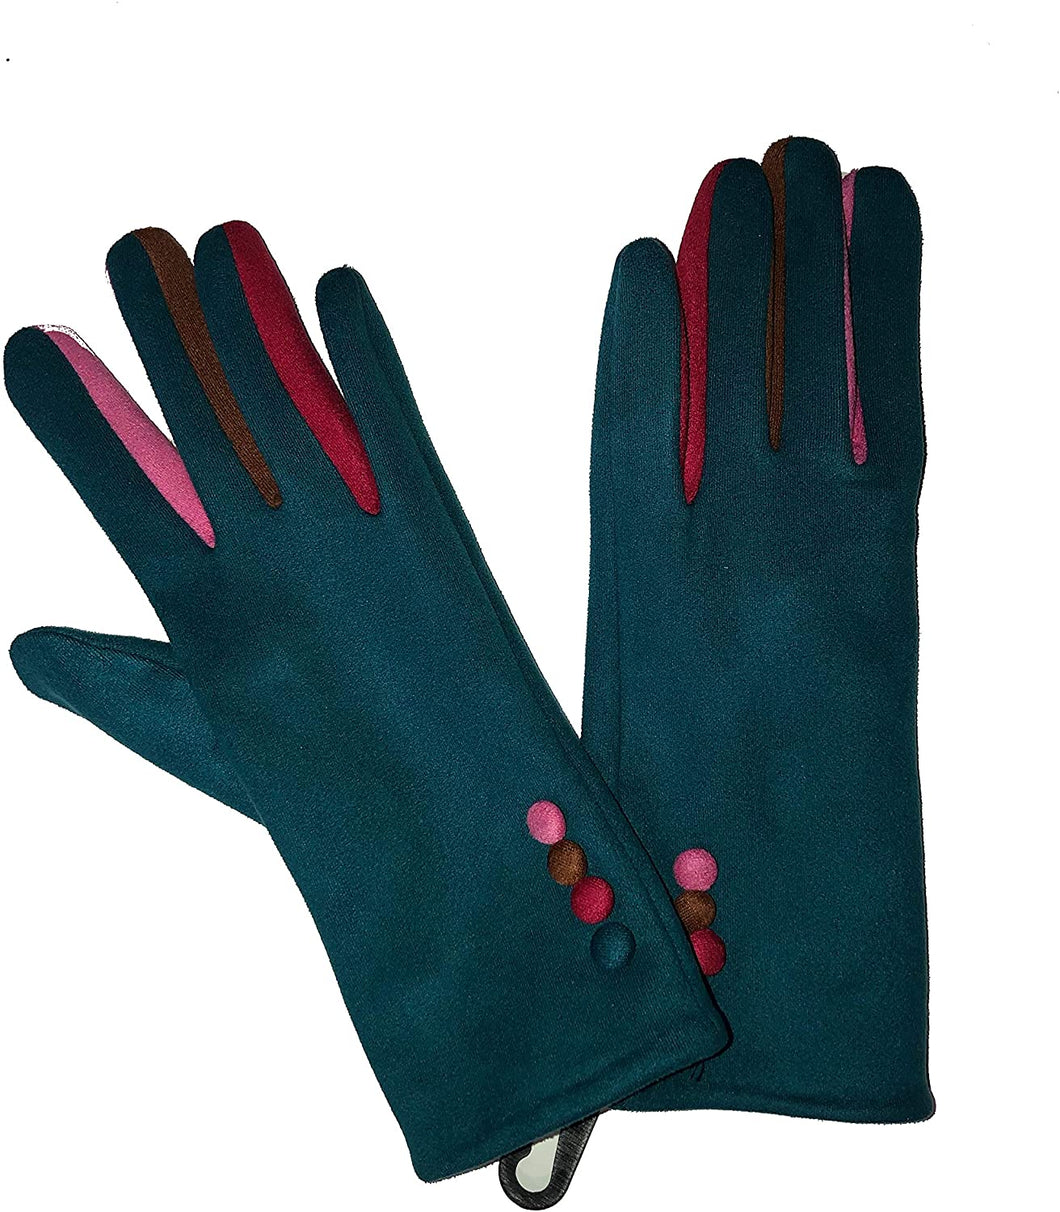 G1925 Plain teal ladies Gloves with a splash of colour between the fingers